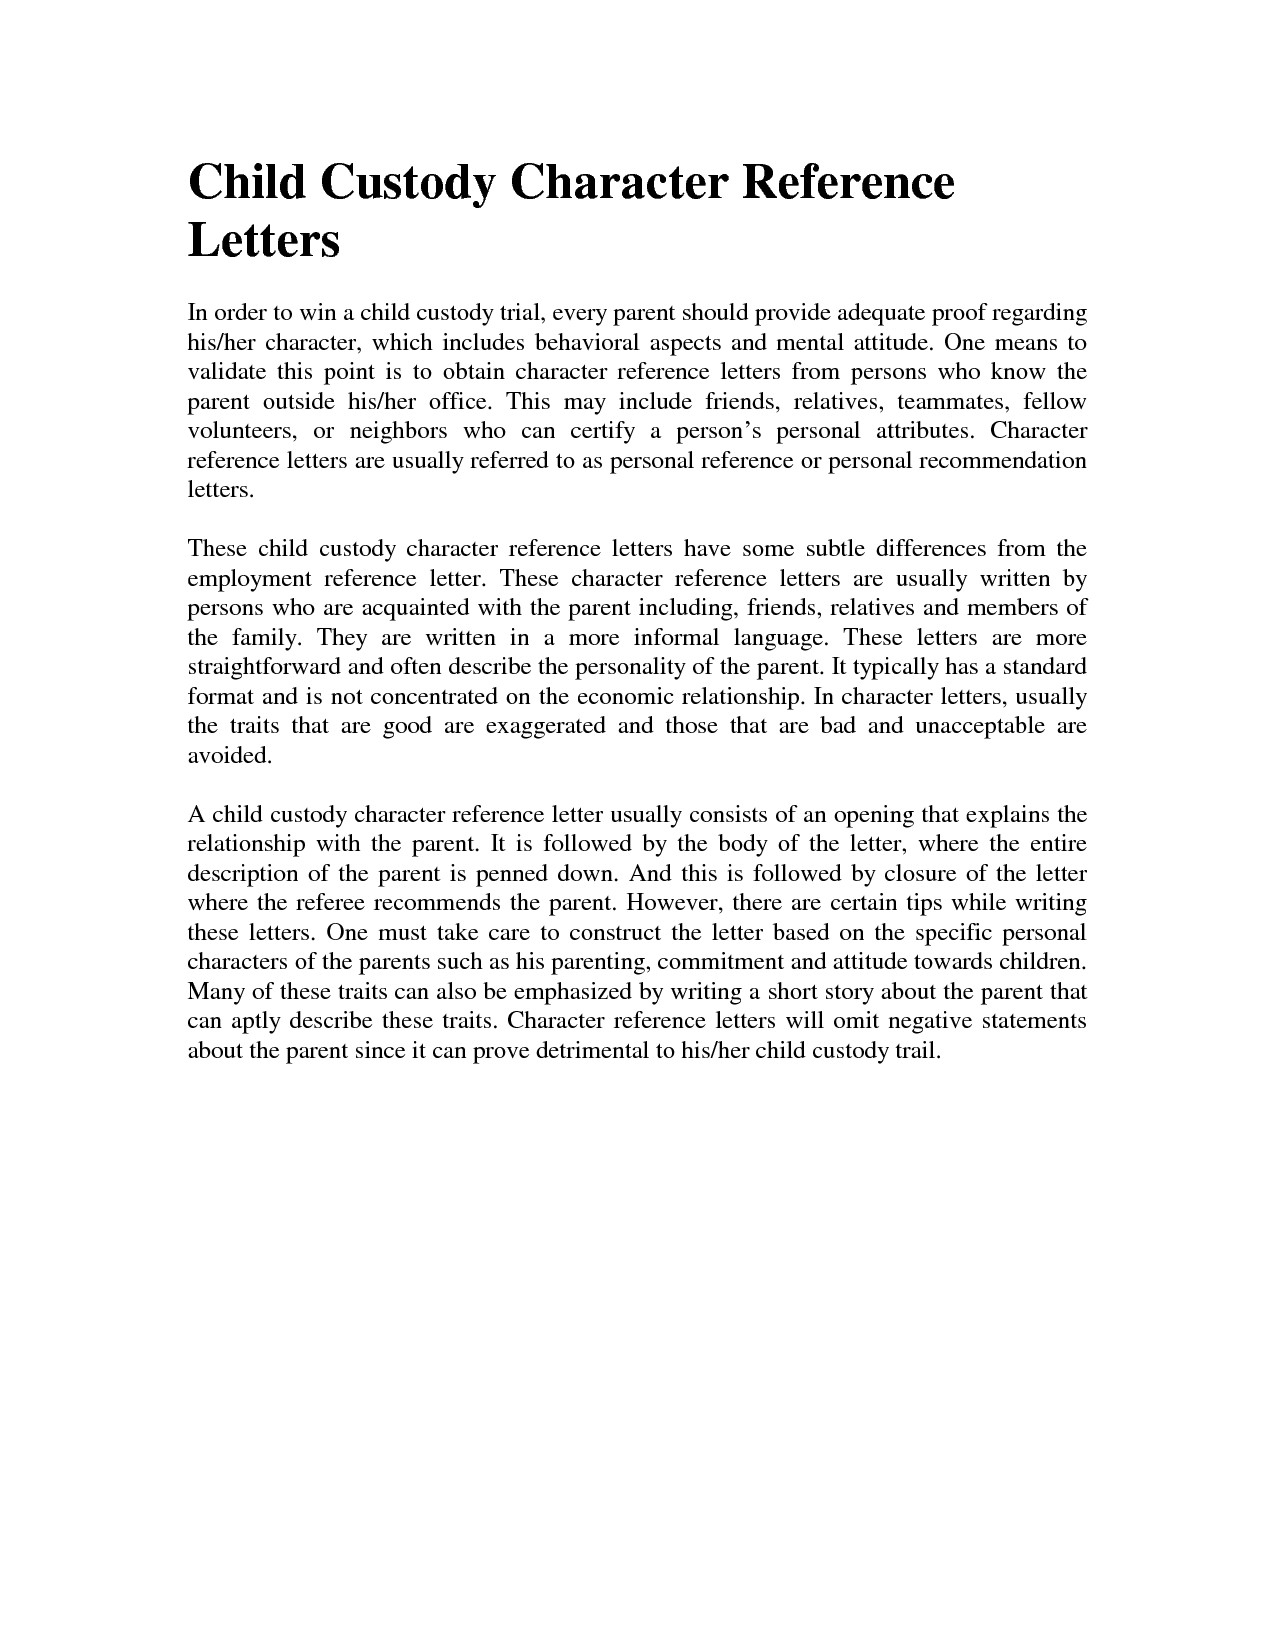 Character Reference Letter for Court Child Custody Template - Sample Character Reference for Court New Sample Character Reference